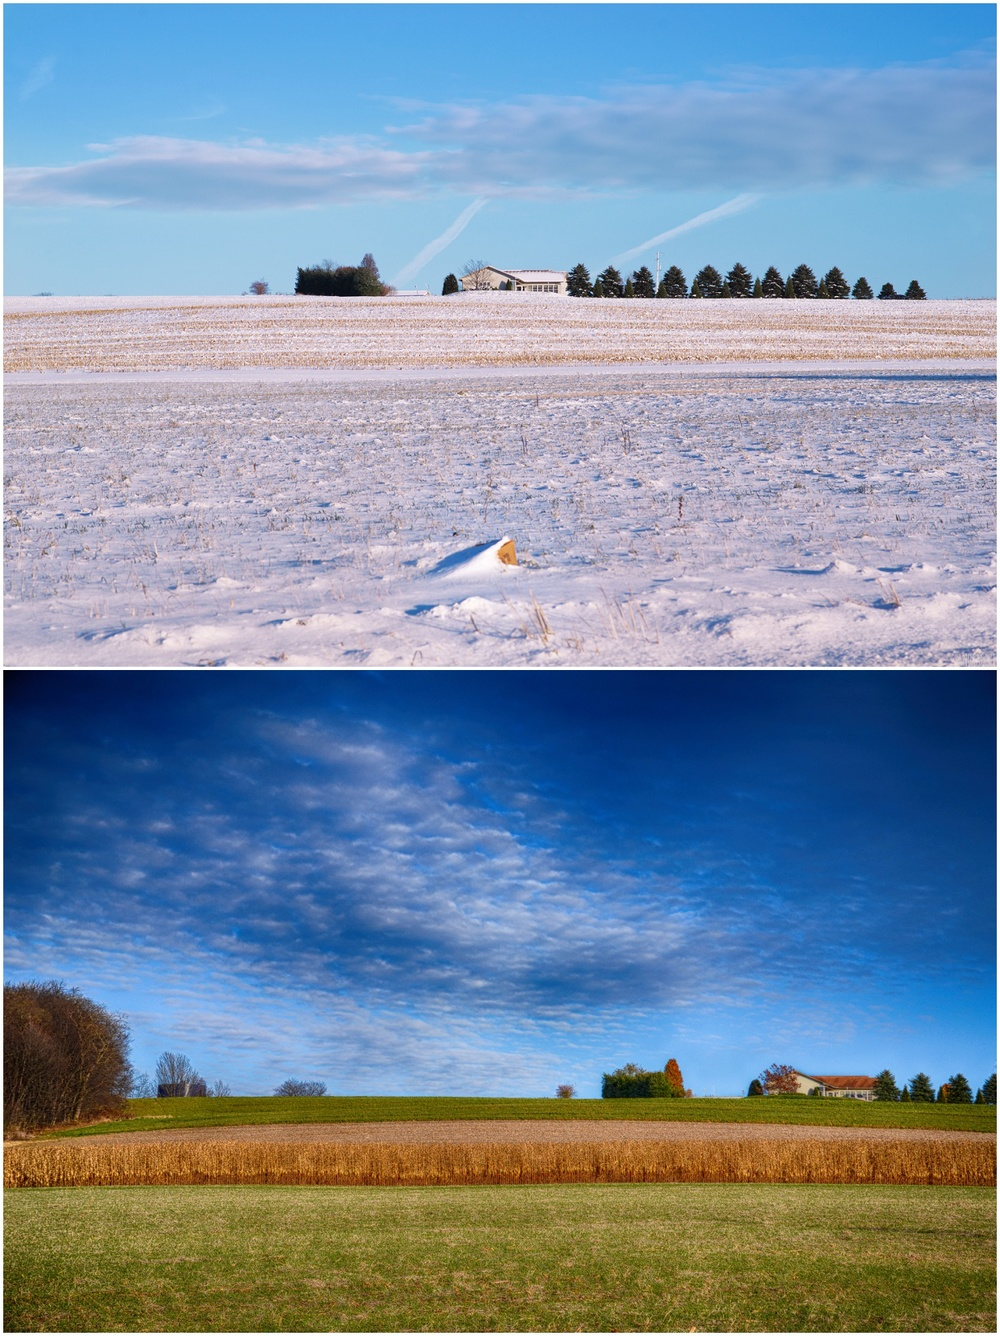 Davidsville: Winter vs Summer